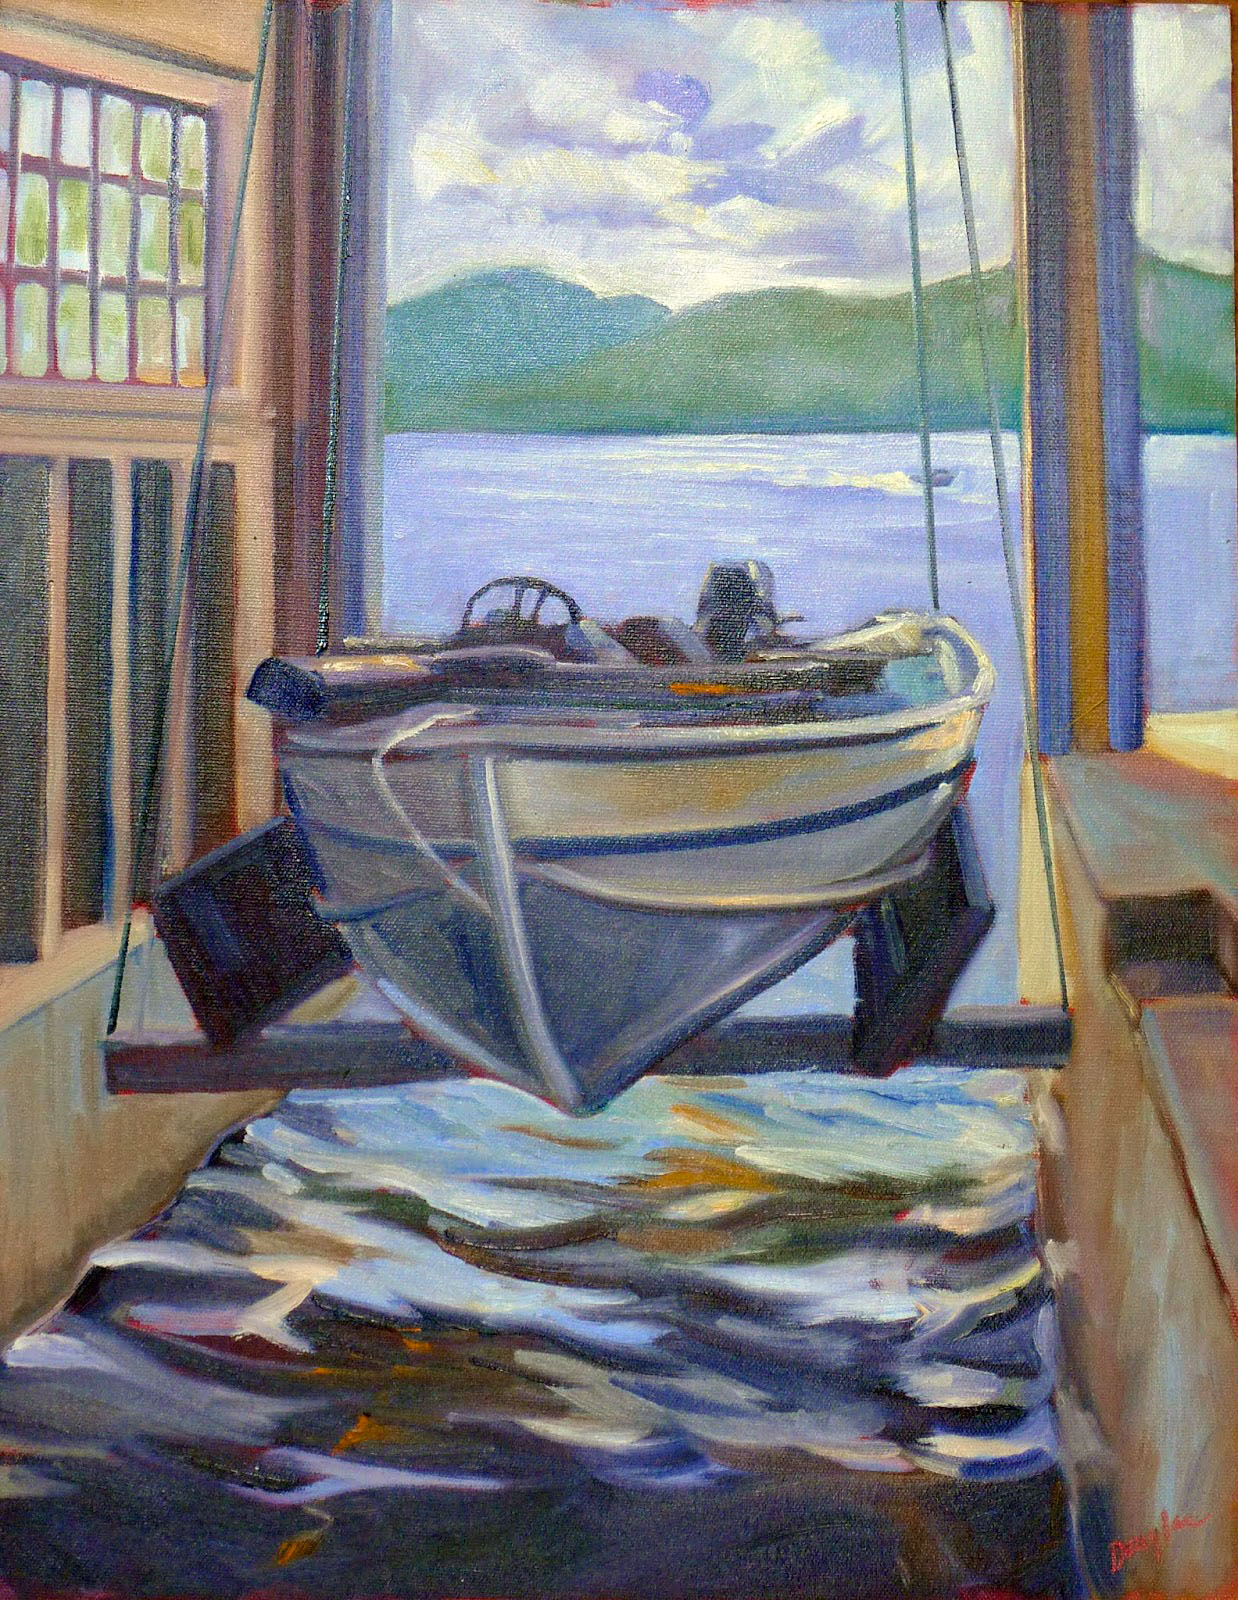 Waiting to Play (Boat House), 14X18, $1275 unframed